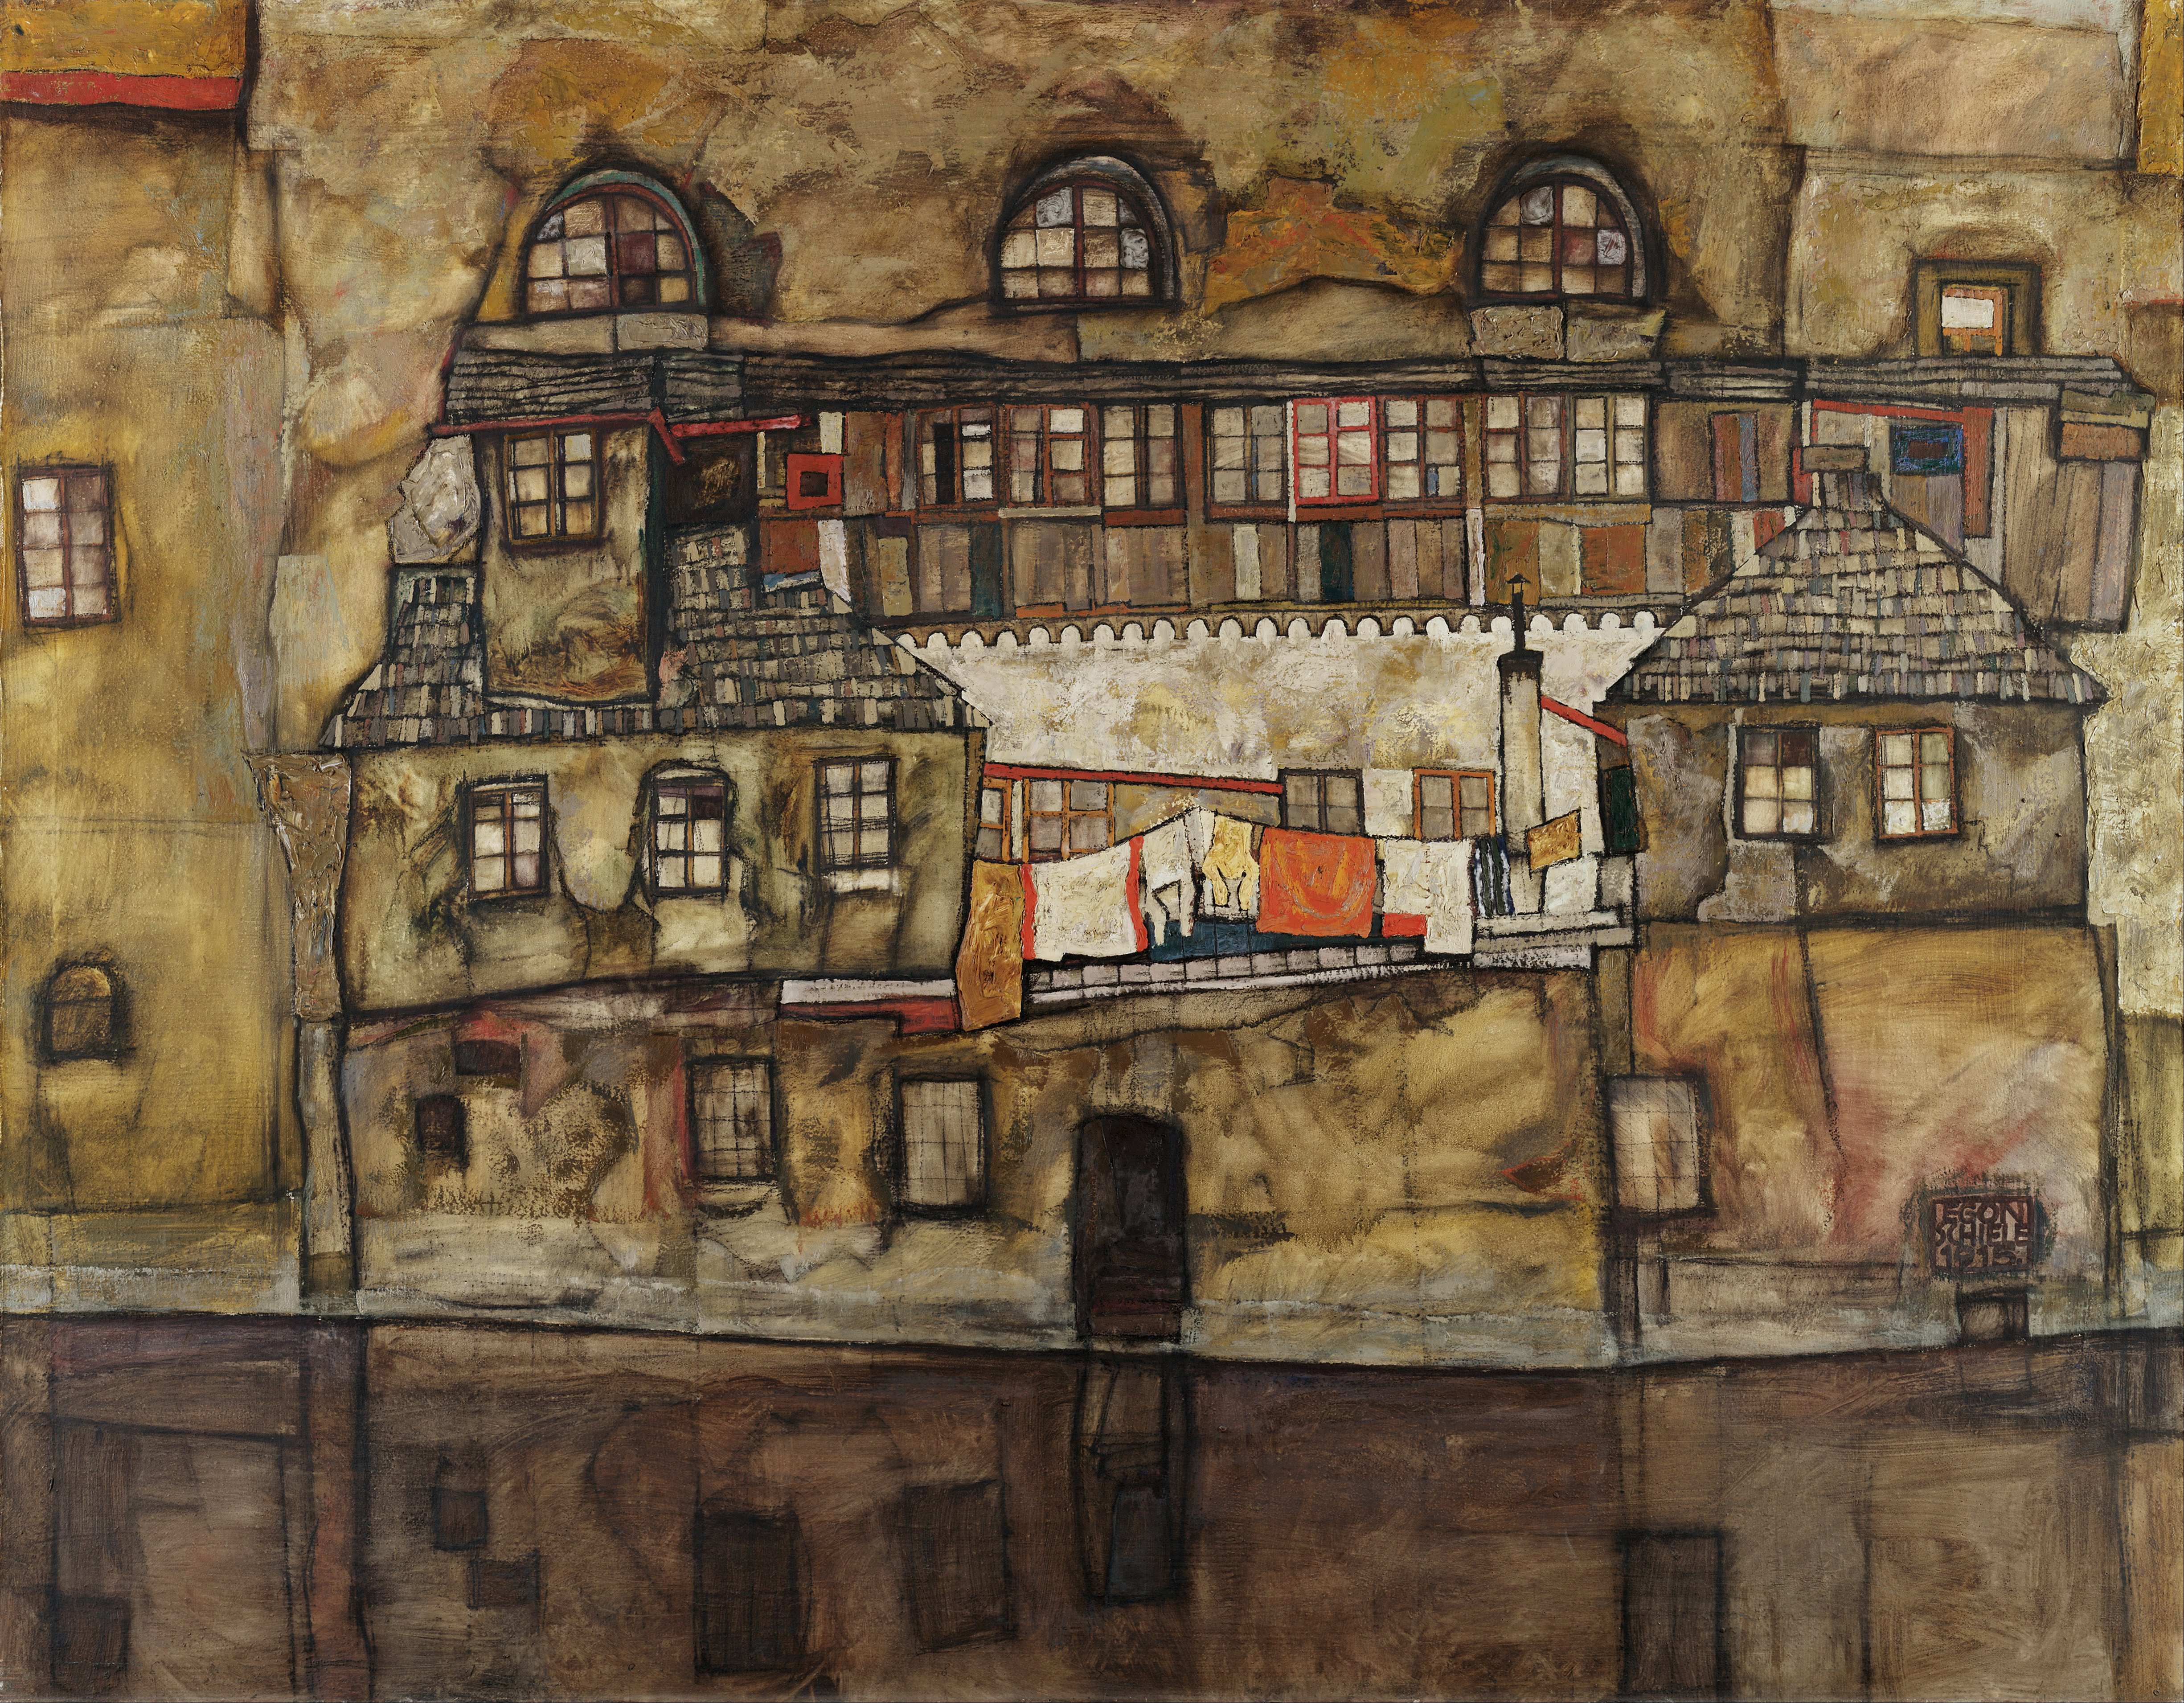 https://upload.wikimedia.org/wikipedia/commons/e/e0/Egon_Schiele_-_House_Wall_on_the_River_-_Google_Art_Project.jpg